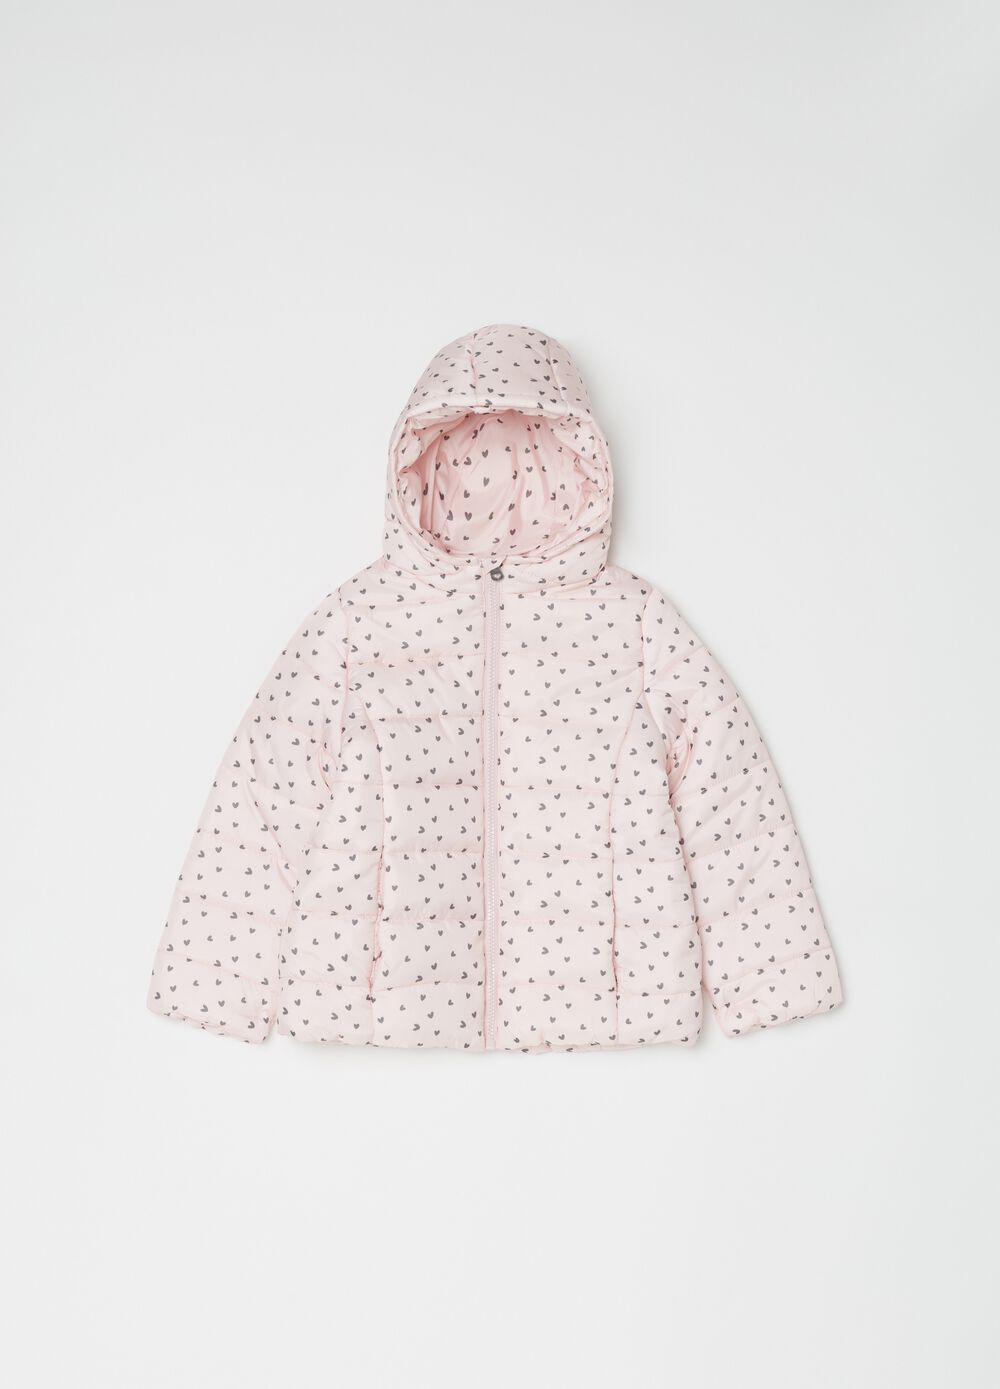 Padded and quilted jacket with hearts